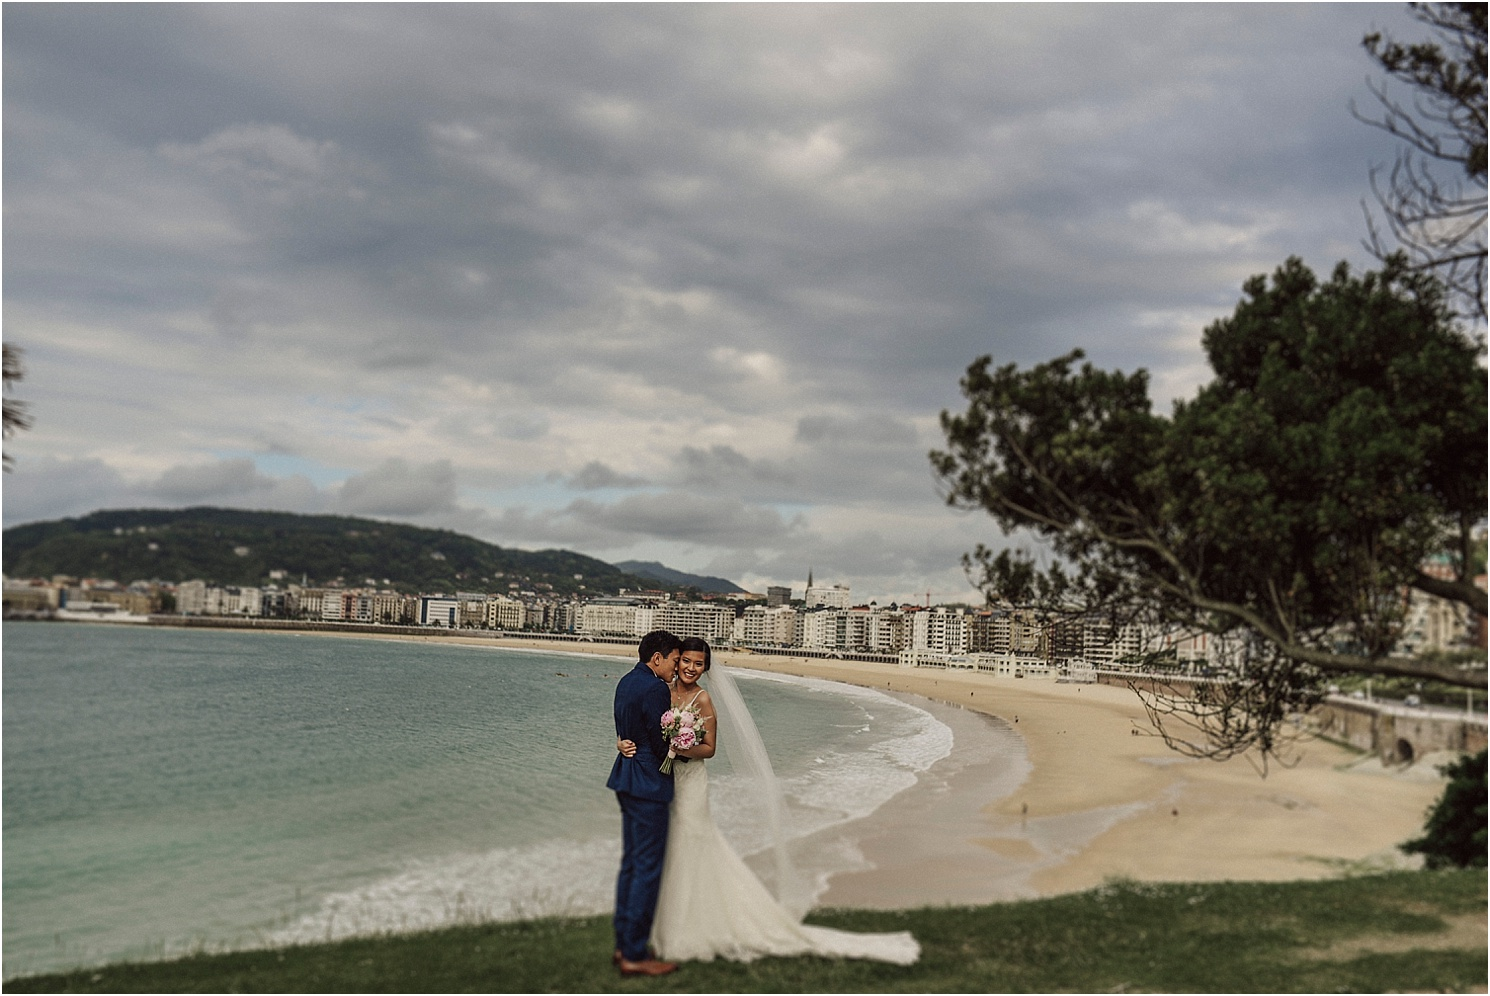 Destination wedding photographer San Sebastian - Destiantion wedding Donostia San Sebastián - Best photographer Basque country_-47